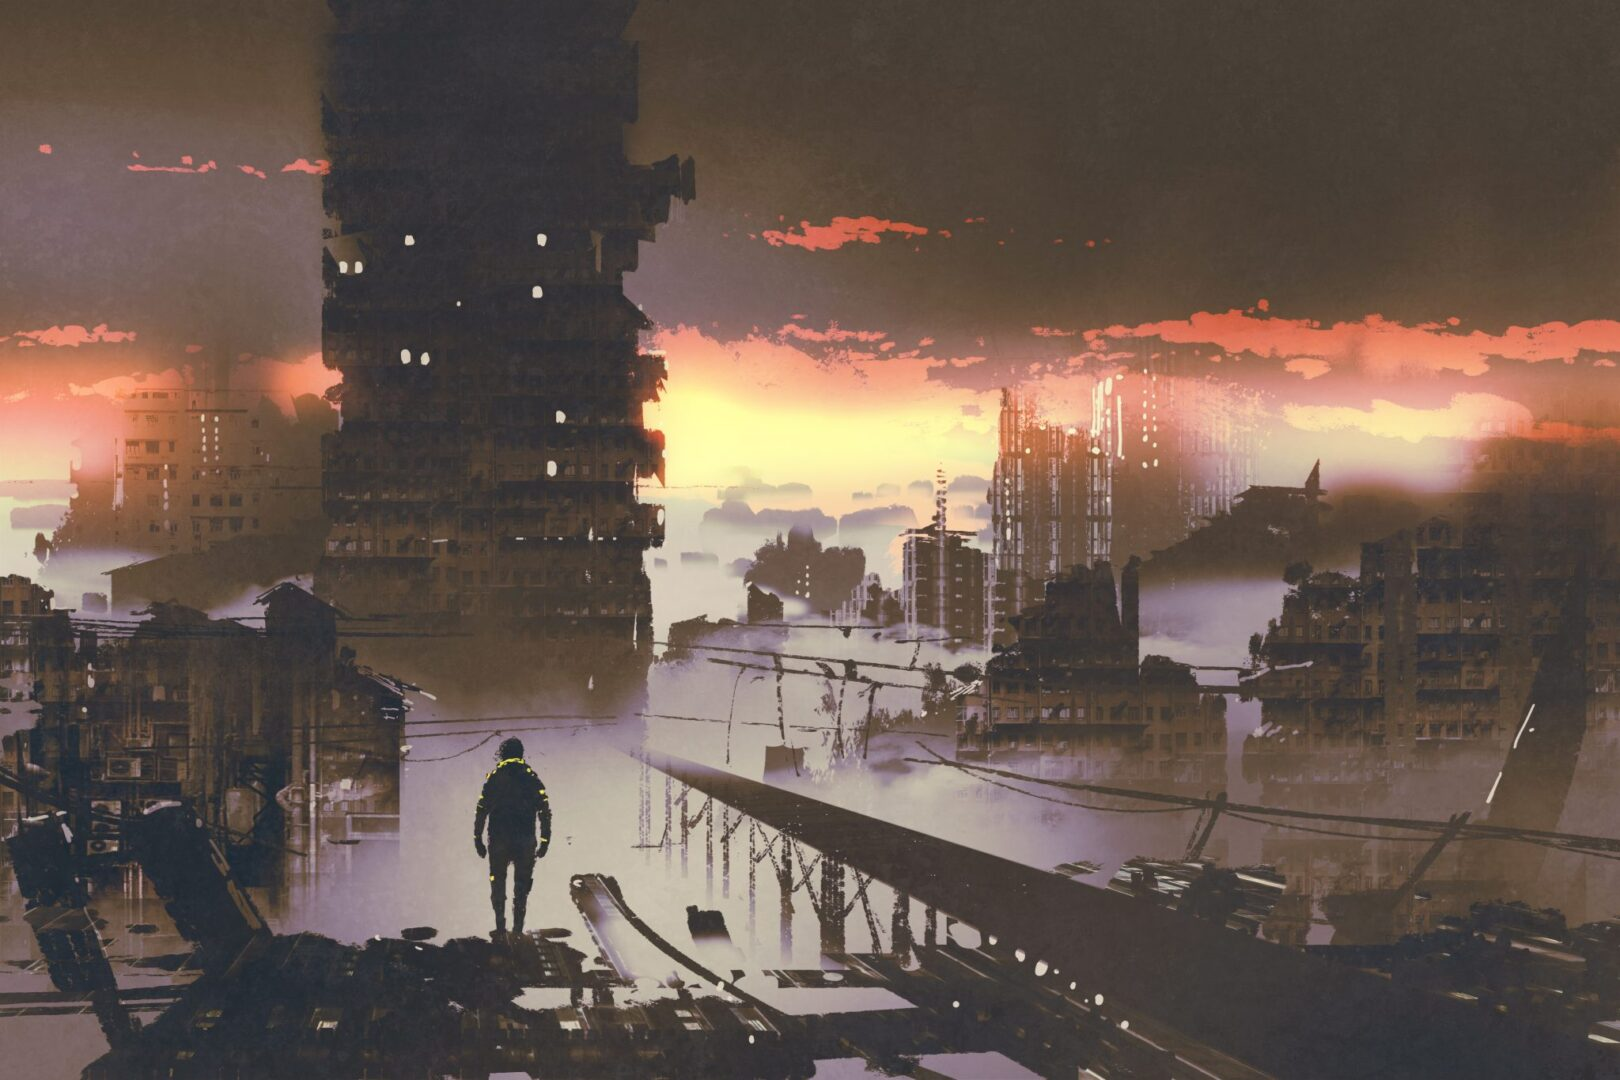 Shows a post apocalyptic world with buildings in ruin and one lone visitor standing on a bridge surveying it all.